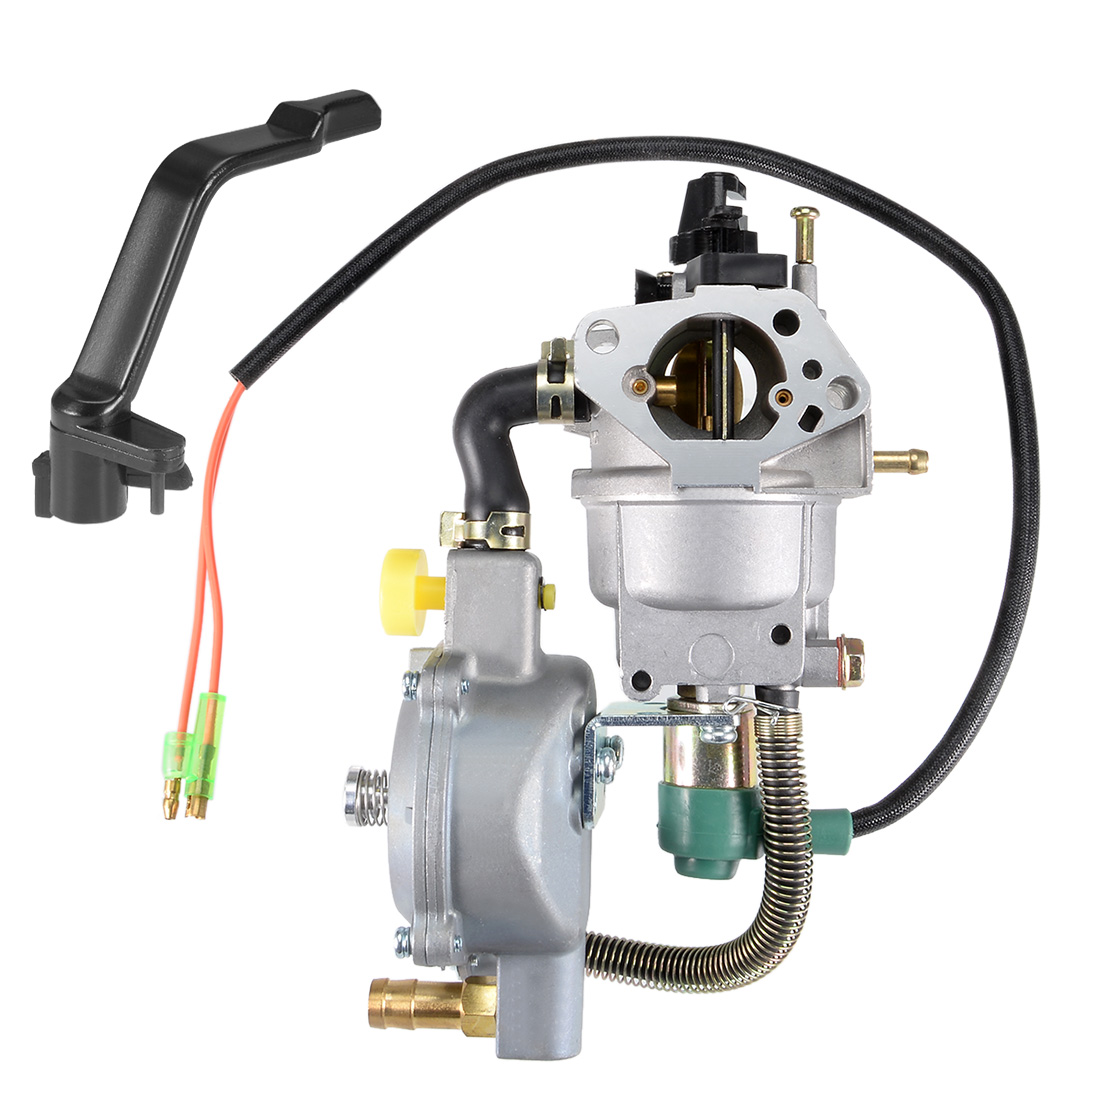 Unique Bargains Generator Dual Fuel Carburetor LPG NG Conversion Kit 4.5-5.5KW GX390 188F